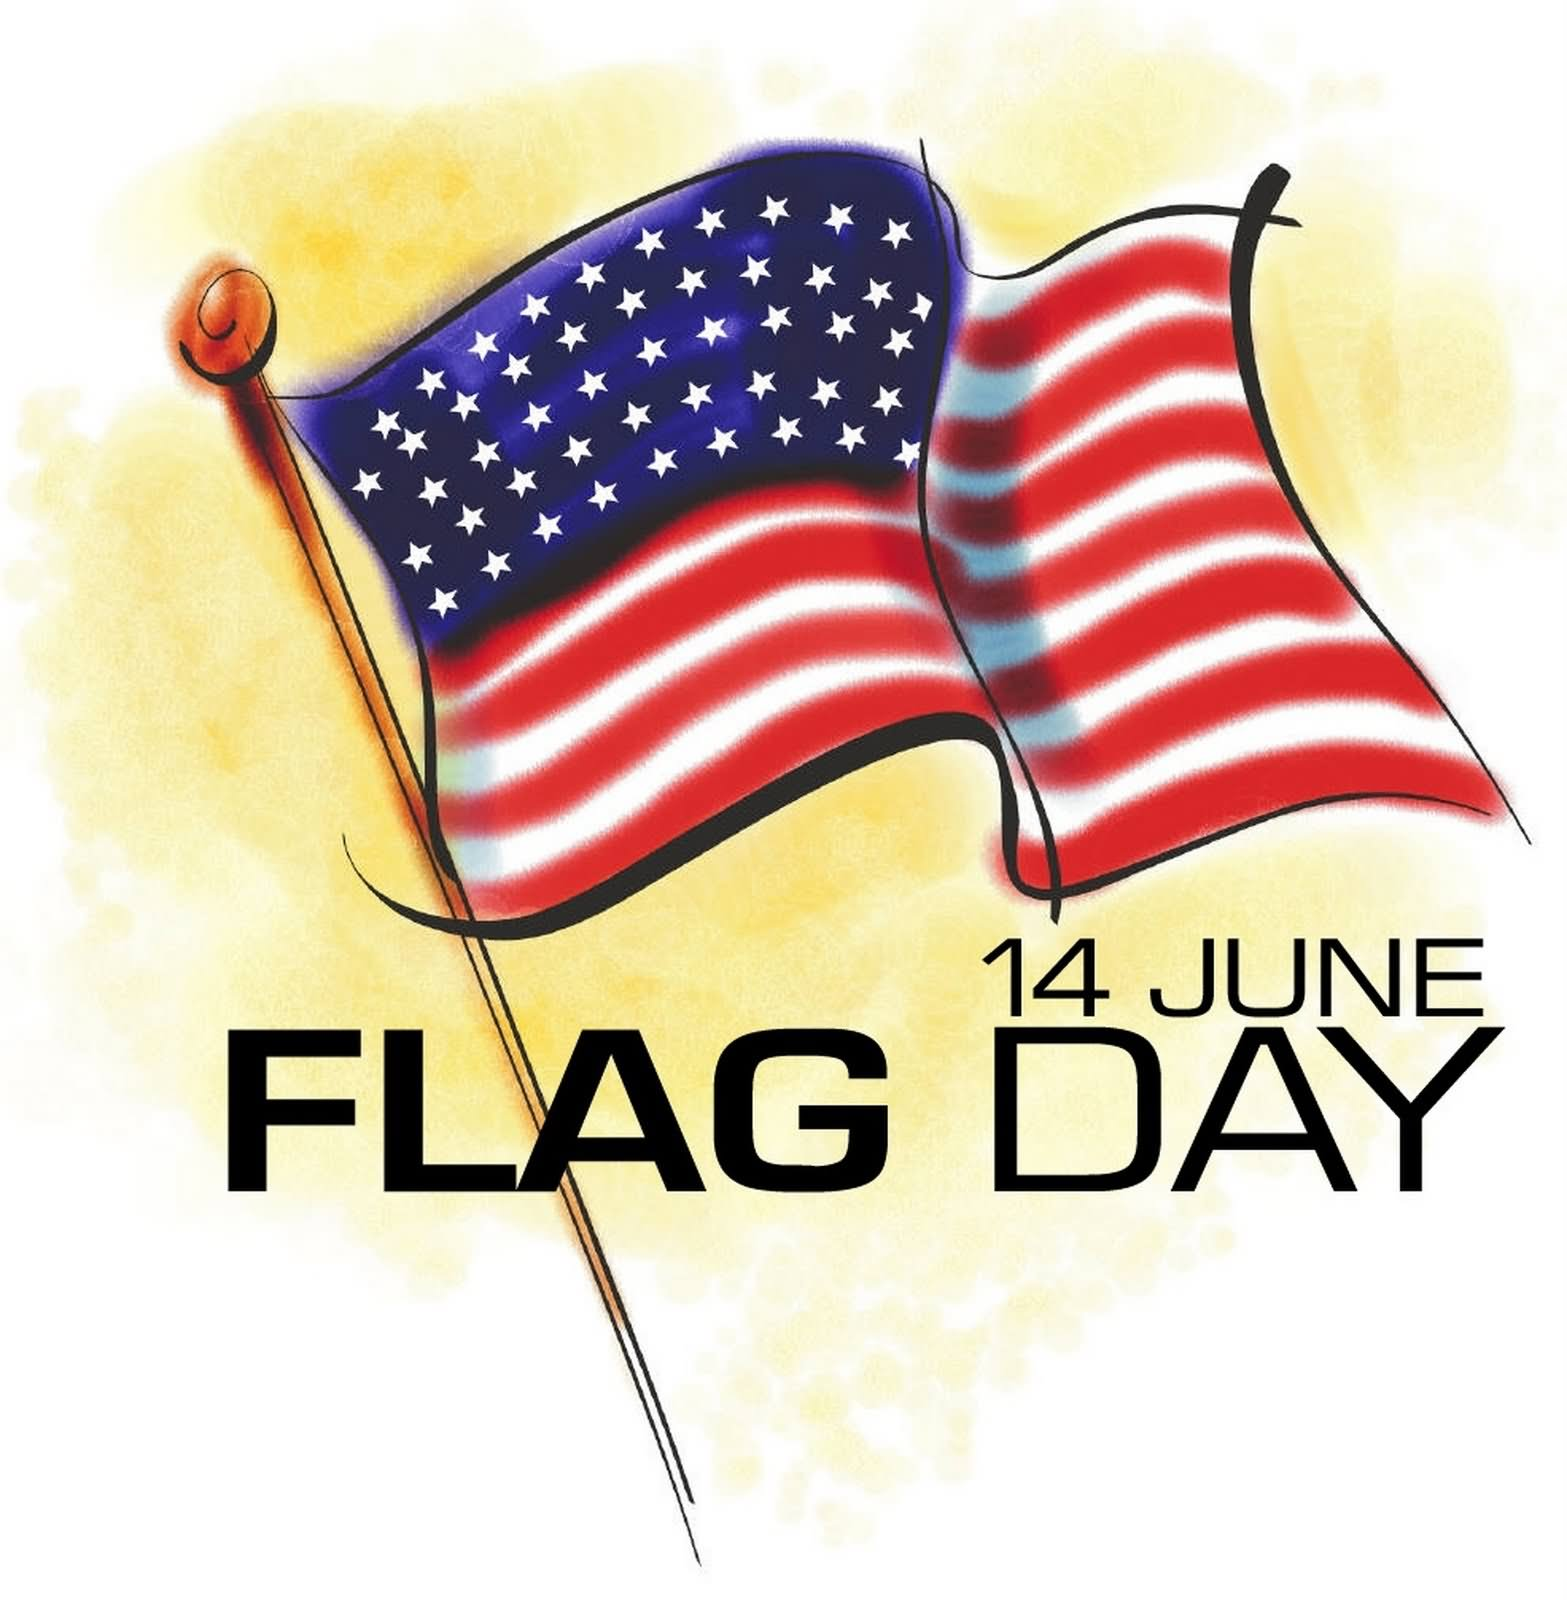 14 June American Flag Day Clipart-14 June American Flag Day Clipart-0